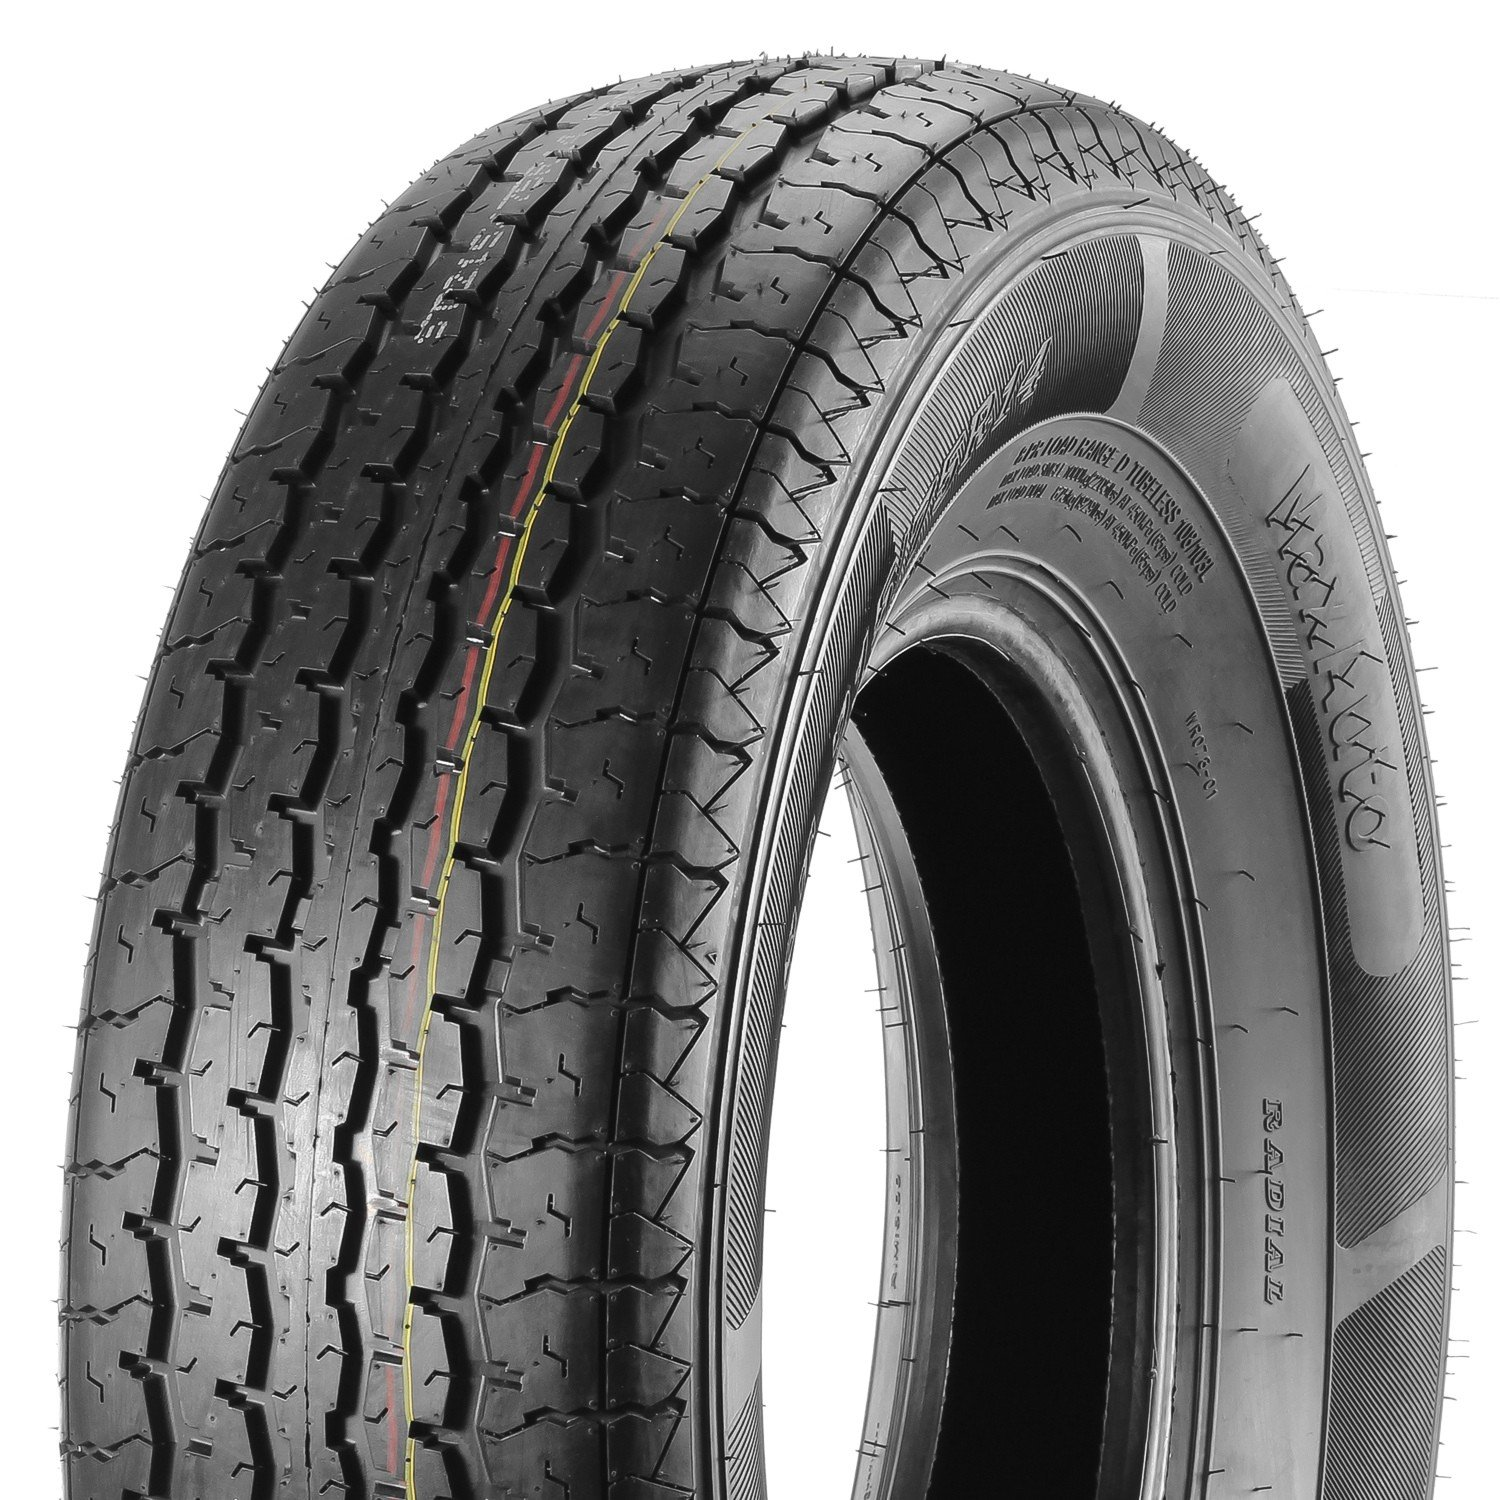 ST215/75R14 Load Range D MaxAuto Radial Trailer Tires ST215/75R-14 8Ply(Pack of 4) by MaxAuto (Image #5)